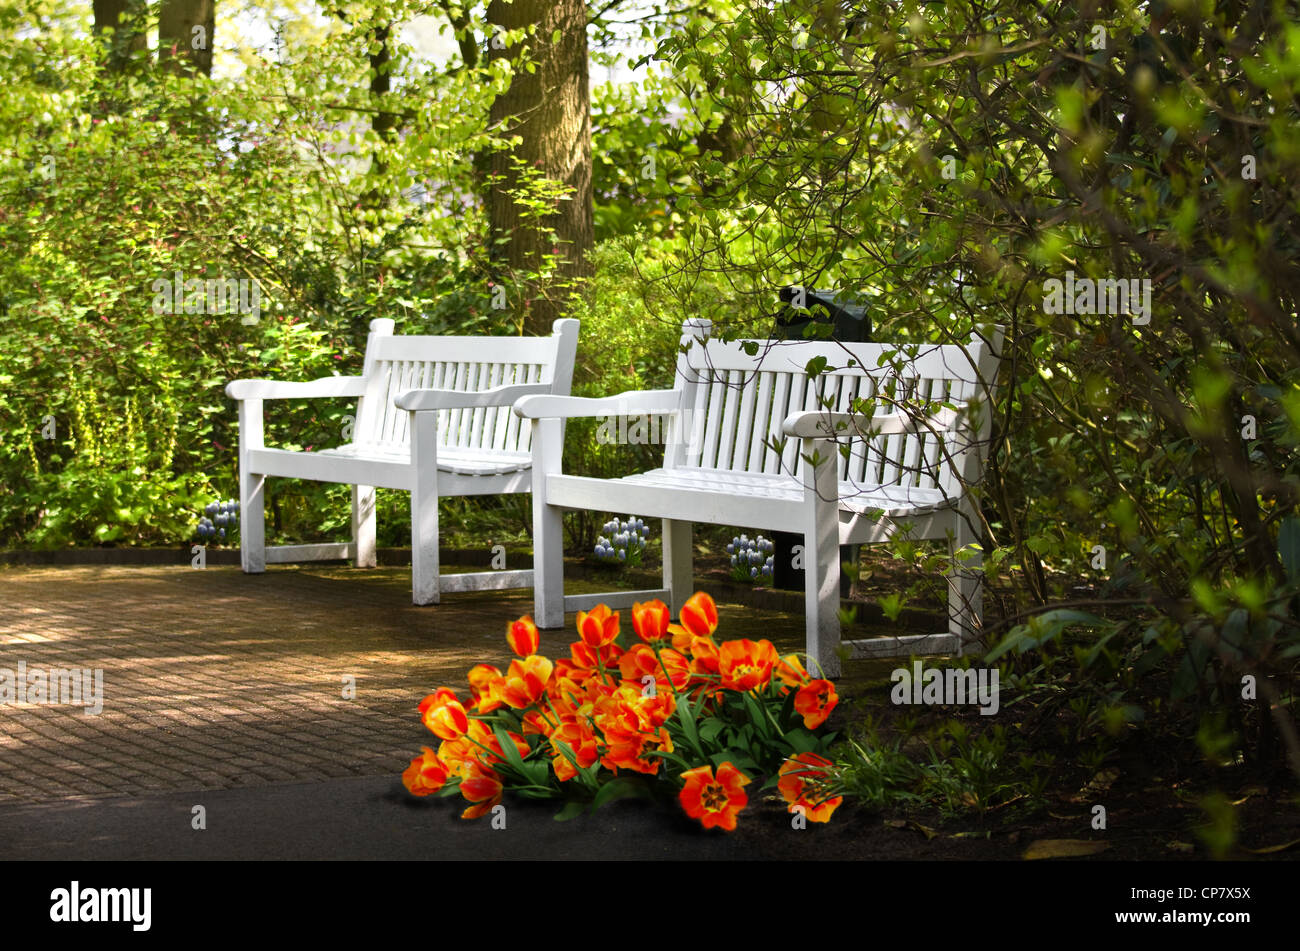 White benches and spring flowers under trees in park - Stock Image